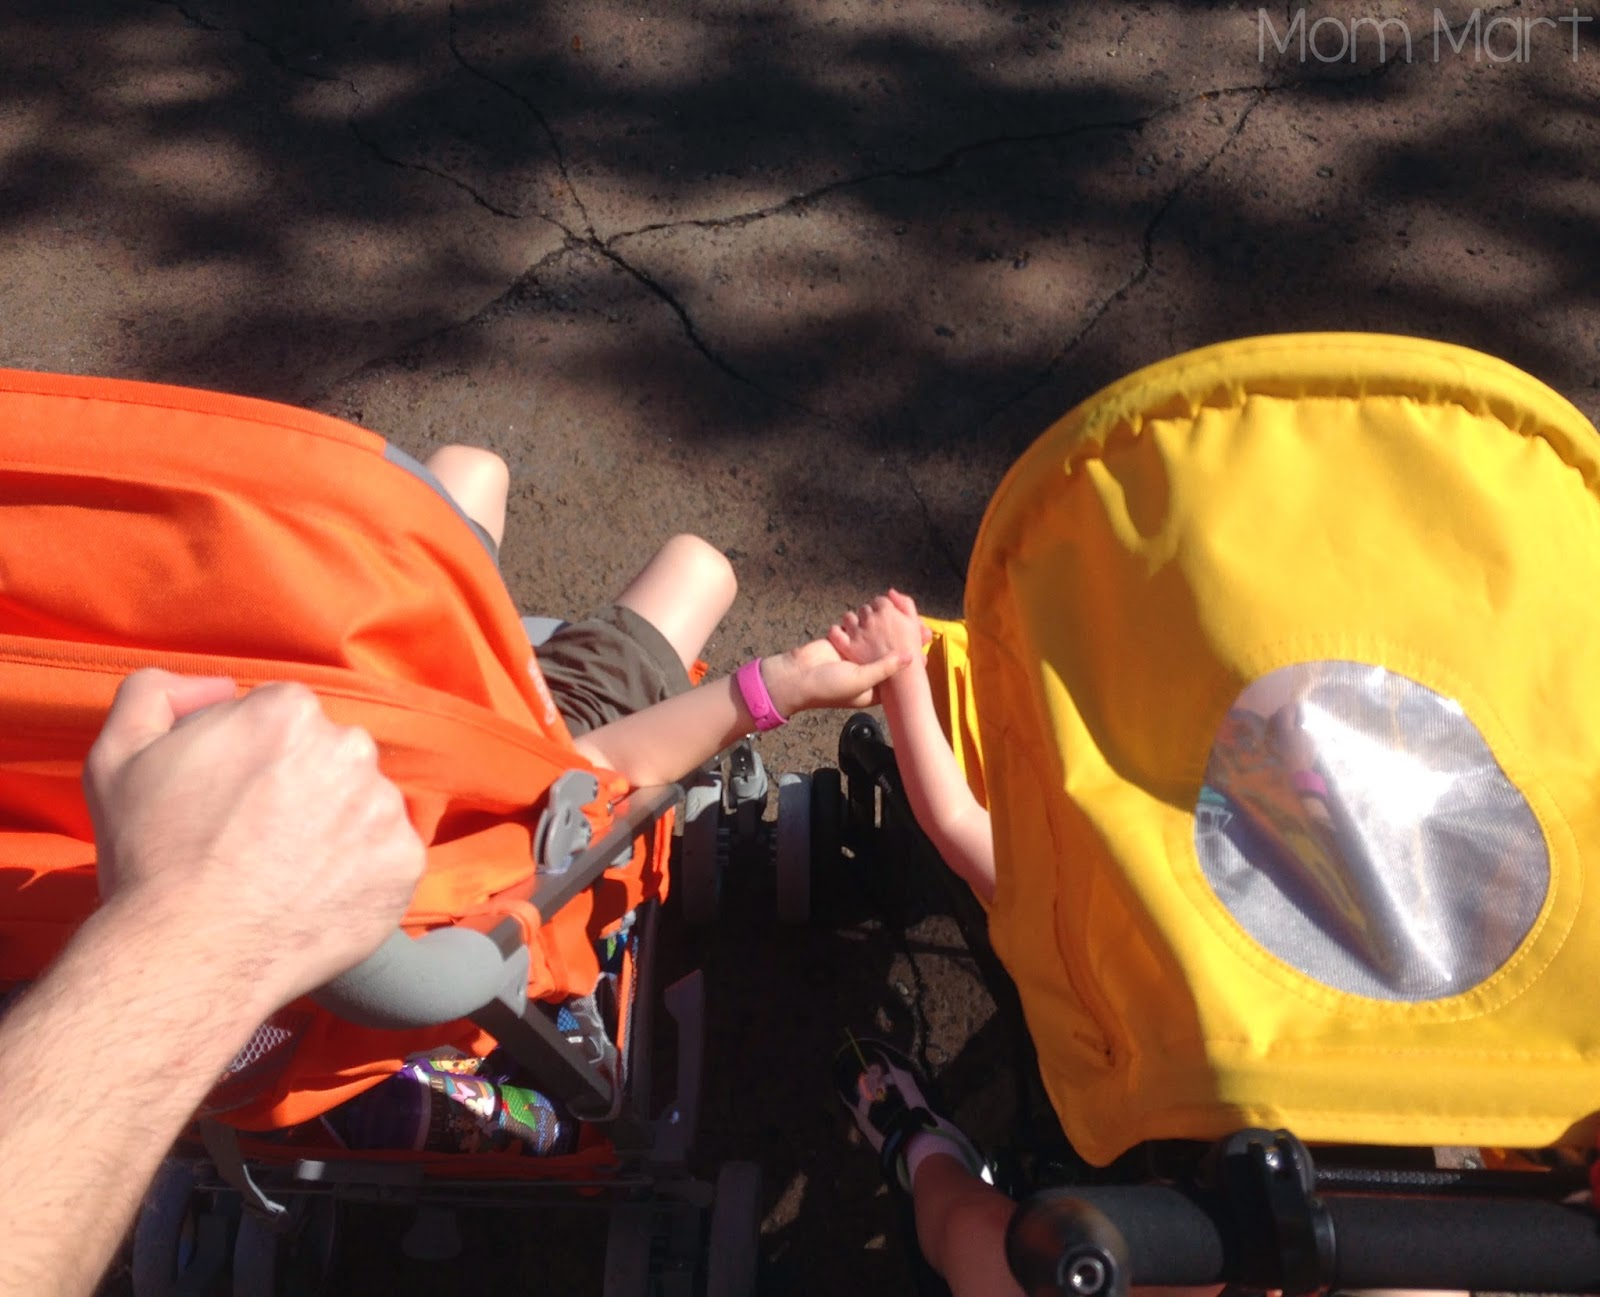 Strollers at Disney World #Disney #Strollers #TipsAndTricks #SingleStroller and #DoubleStroller